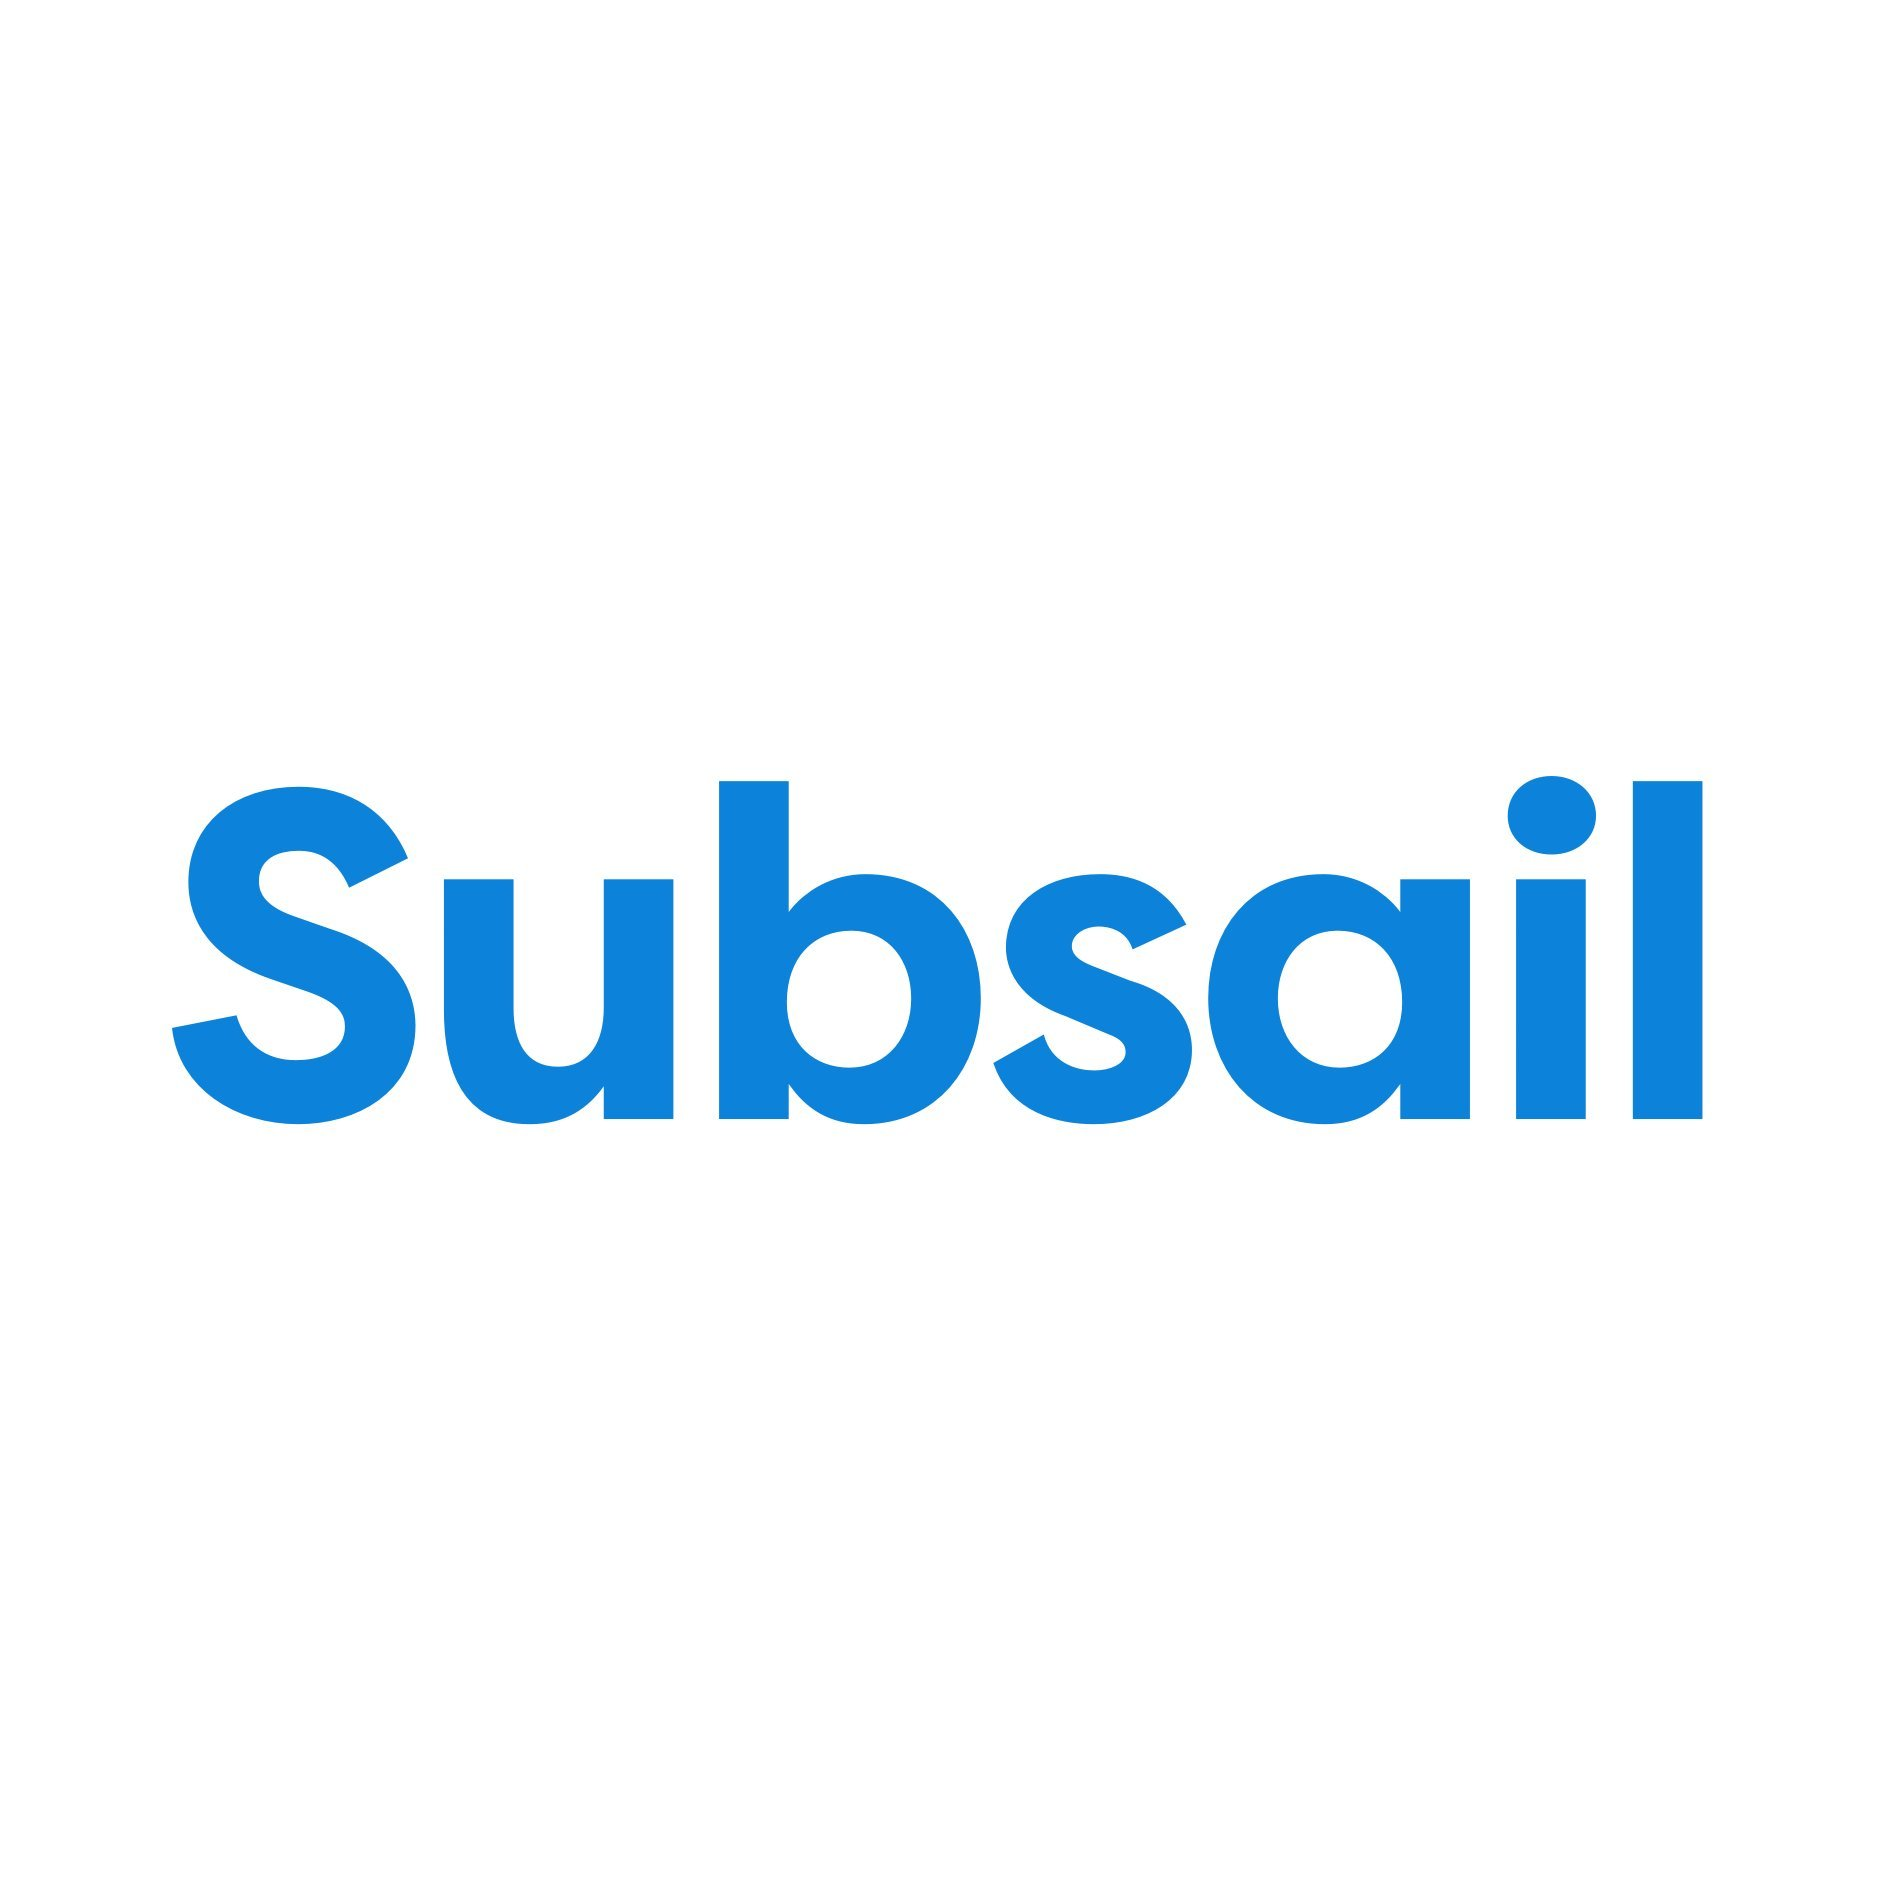 Subsail